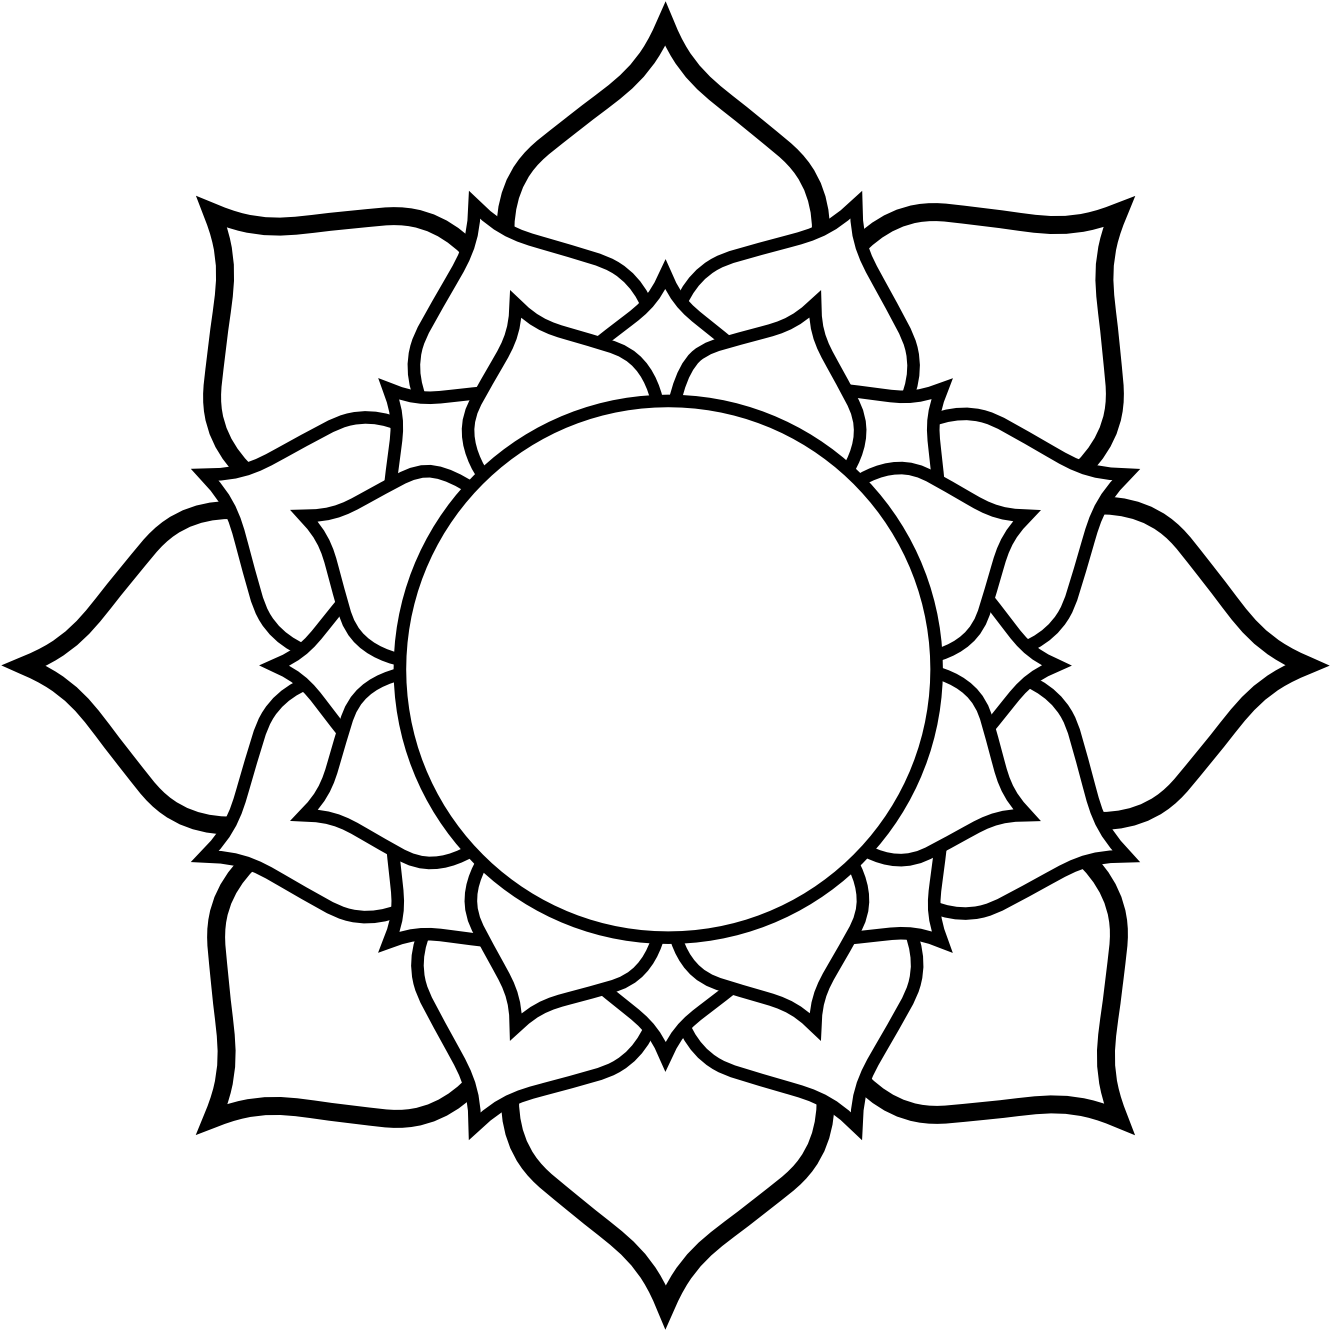 Lotus clipart easy draw. Free flower line drawing